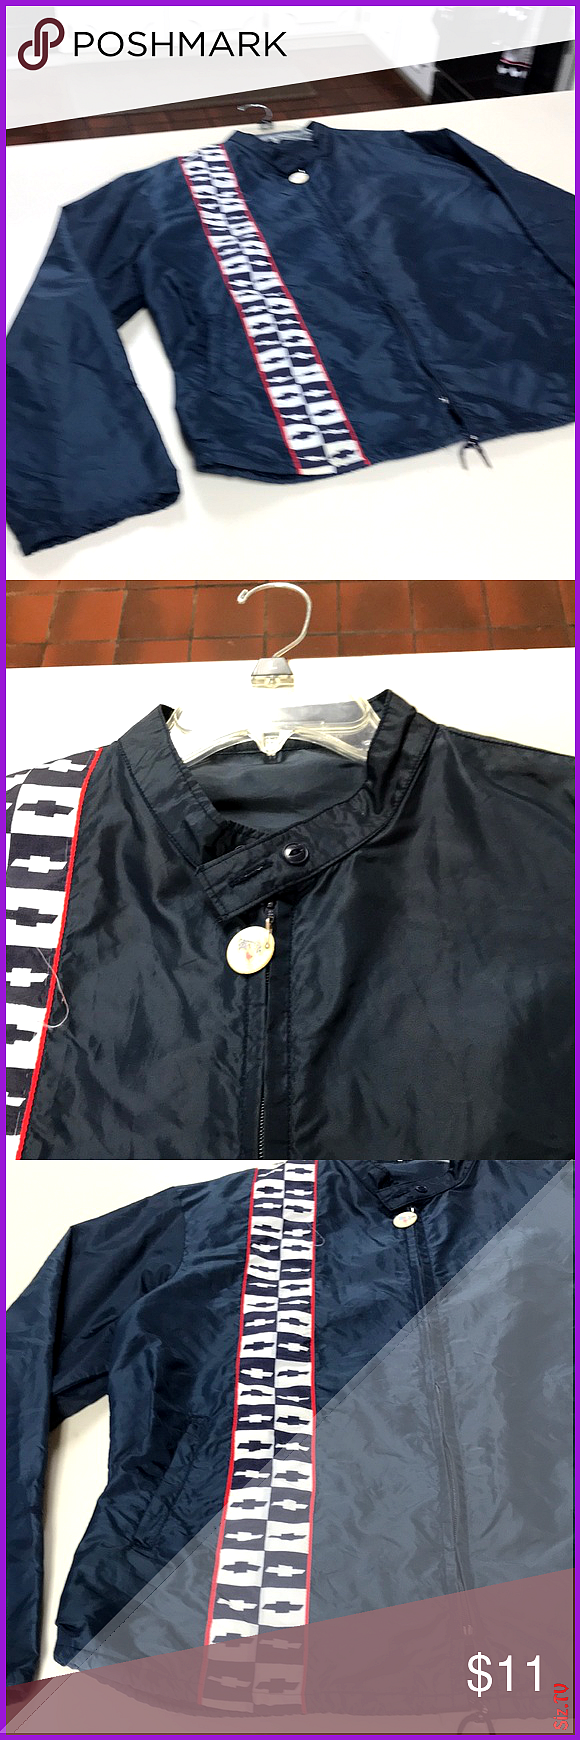 Chevy windbreaker No holes or tears Has an orange spot on left elbow No tags or size listed I  m gu